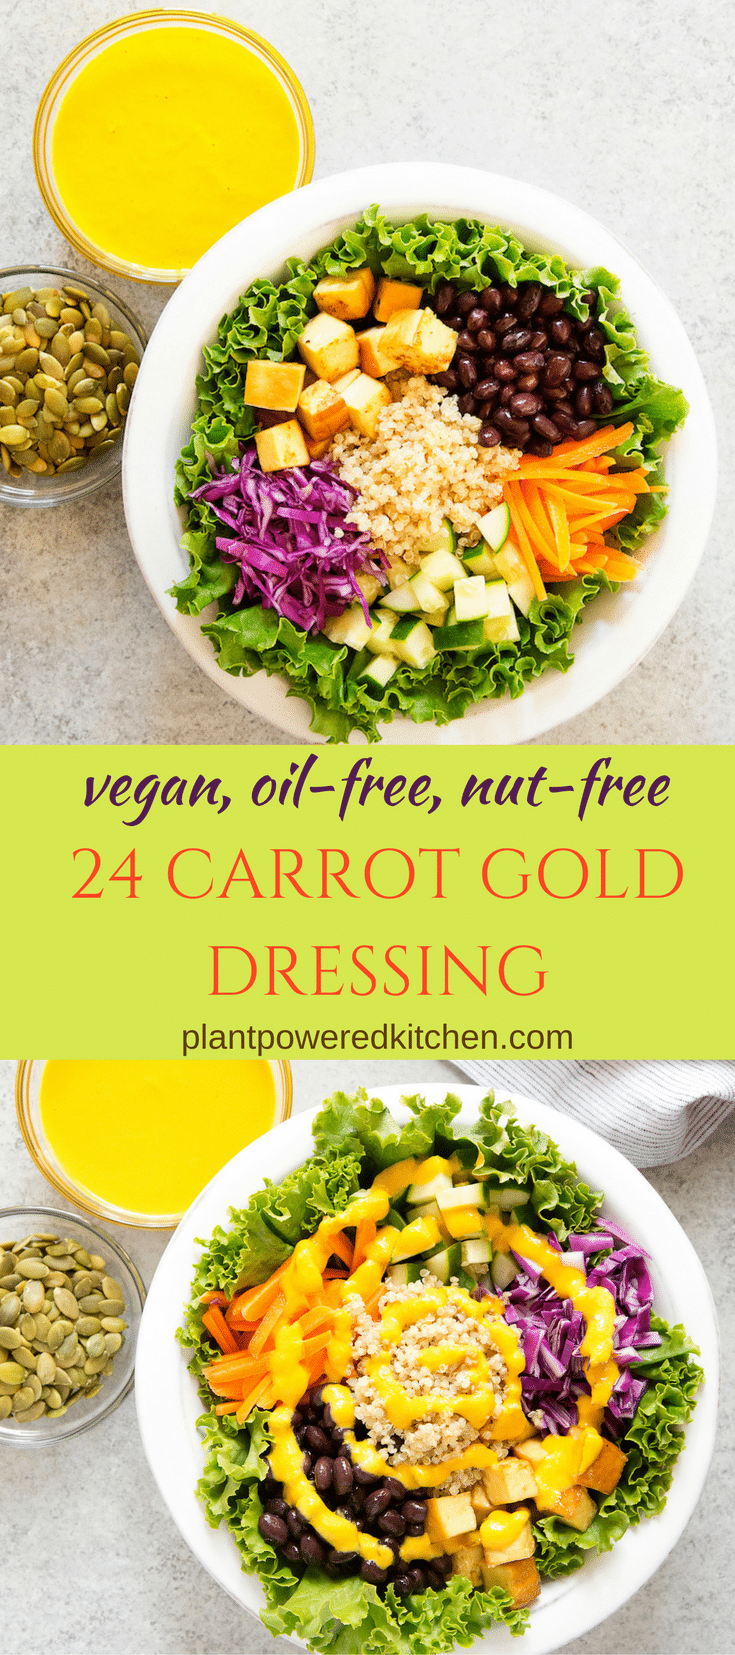 24 CARROT GOLD DRESSING! vegan, oil-free, gluten-free, and nut-free plantpoweredkitchen.com